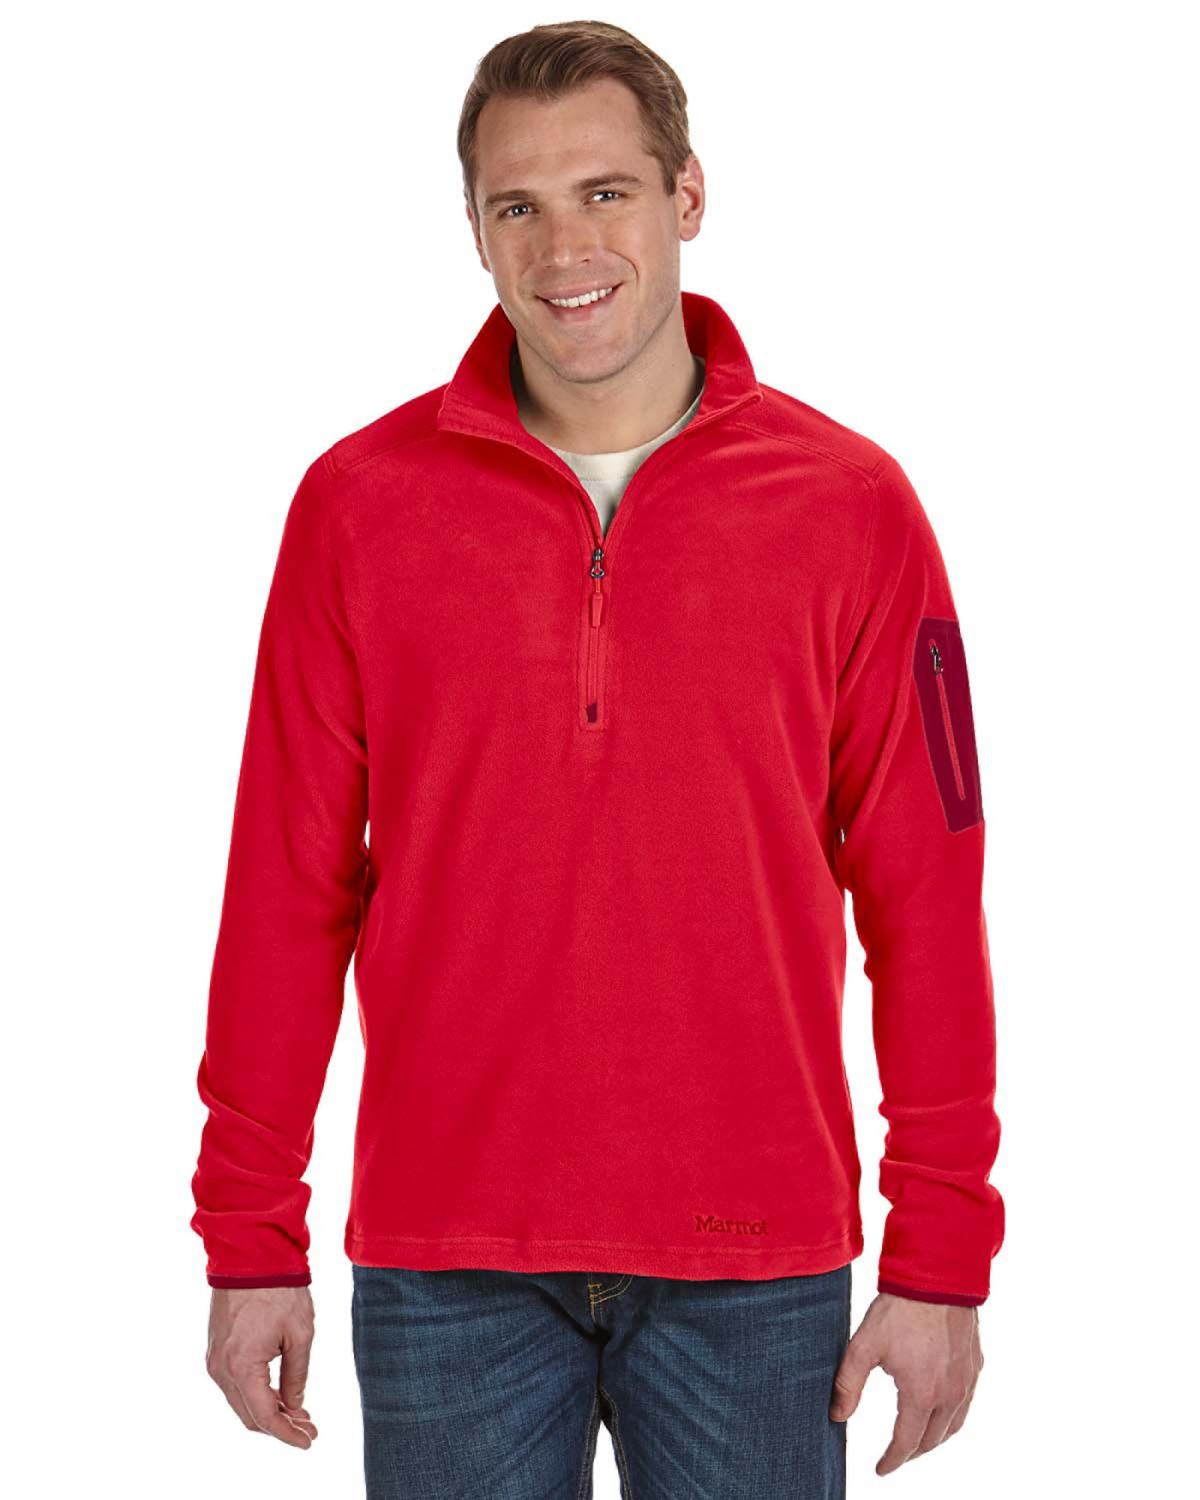 Marmot - 98130 Men's Reactor Half-Zip